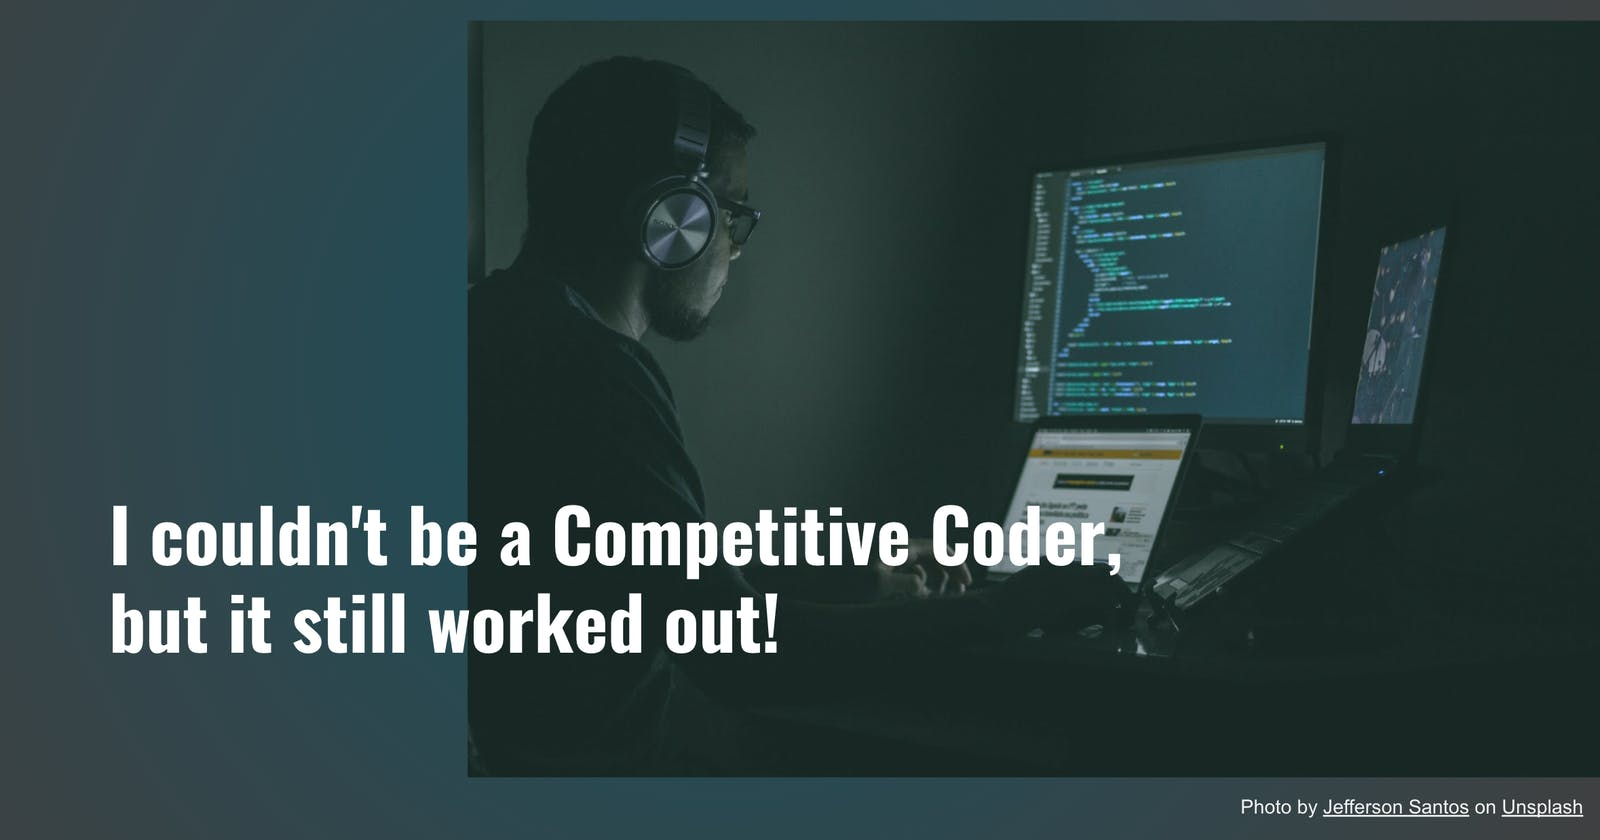 I couldn't be a Competitive Coder, but it still worked out!